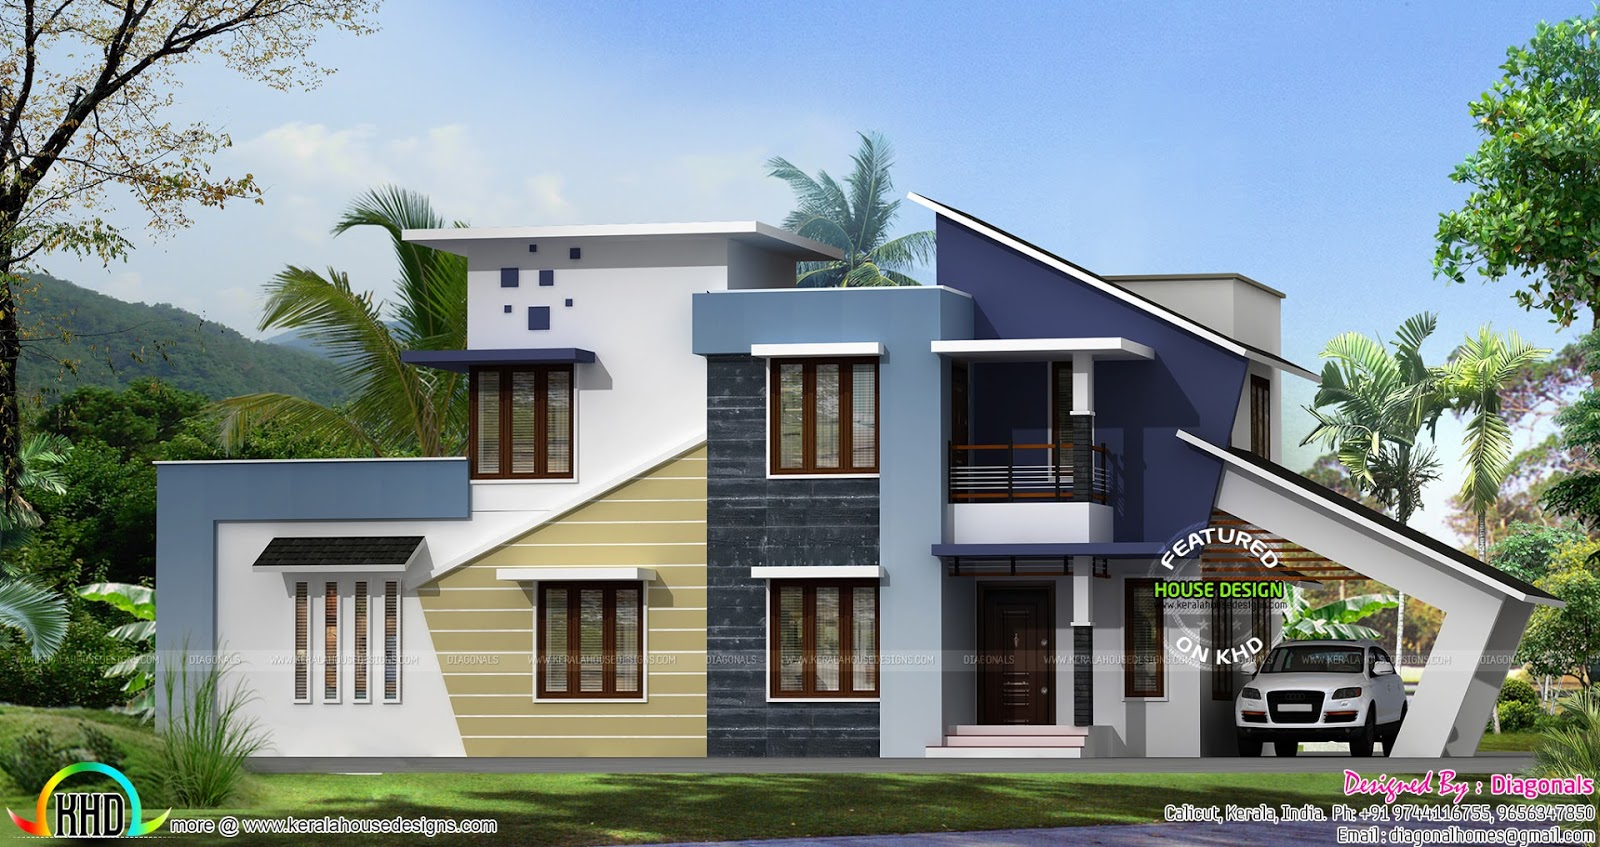 House Designs: New Home Designs Latest: Modern House